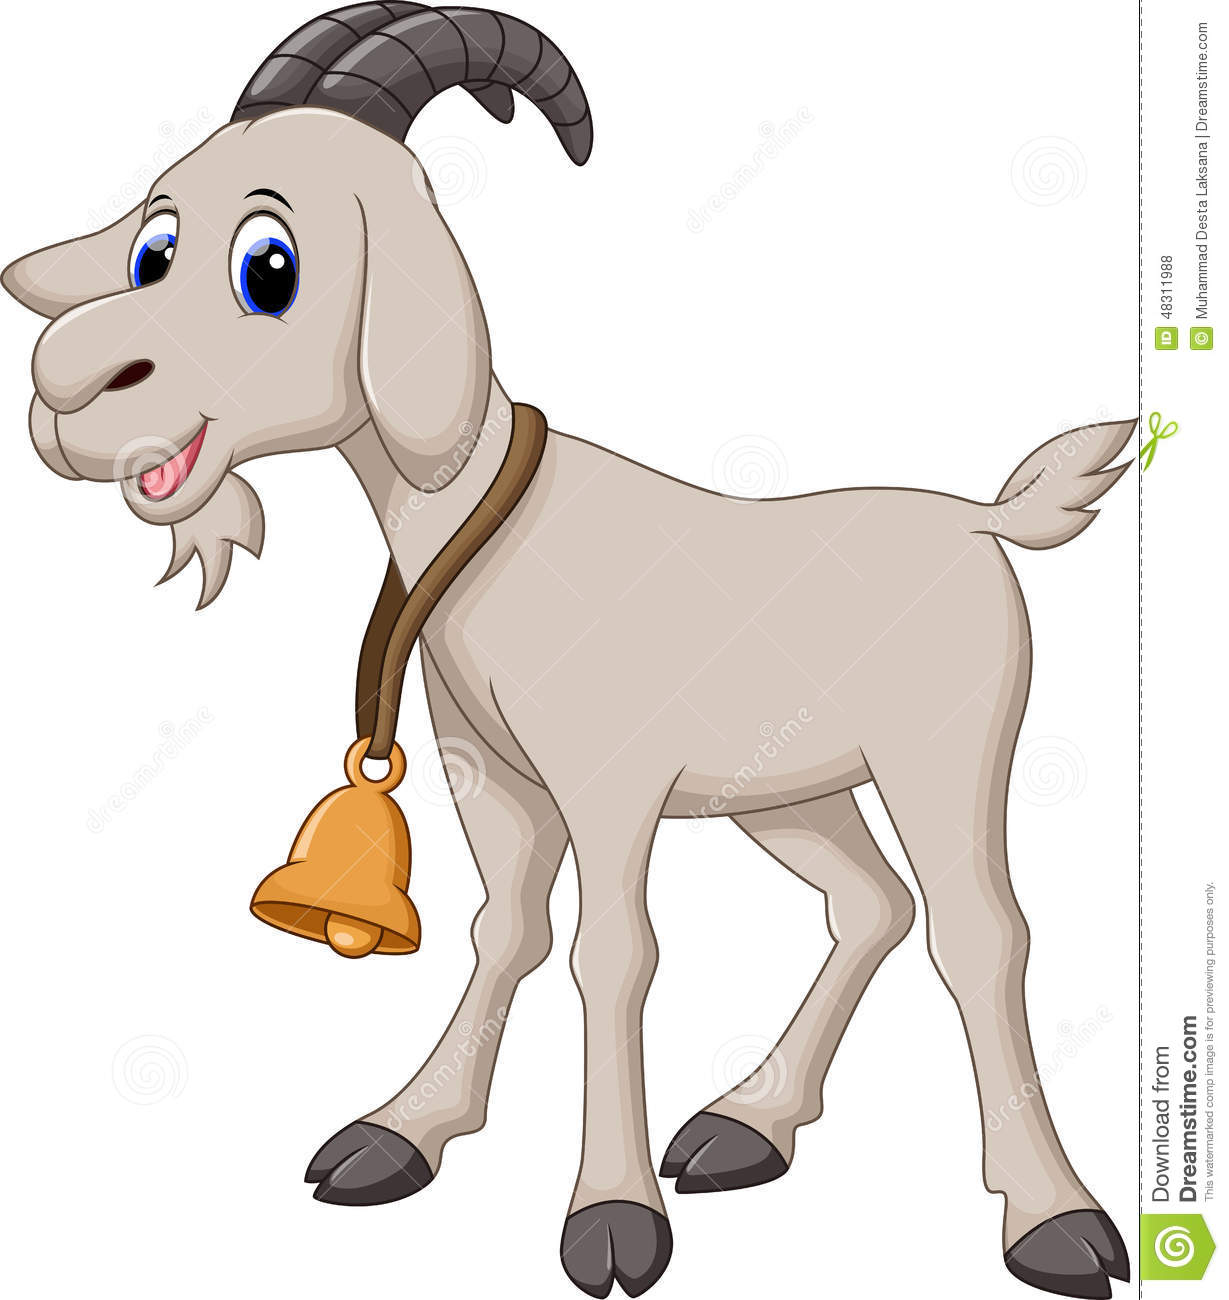 Cute Goat Clipart Cute Goat Cartoon Stock Illustration Illustration Of